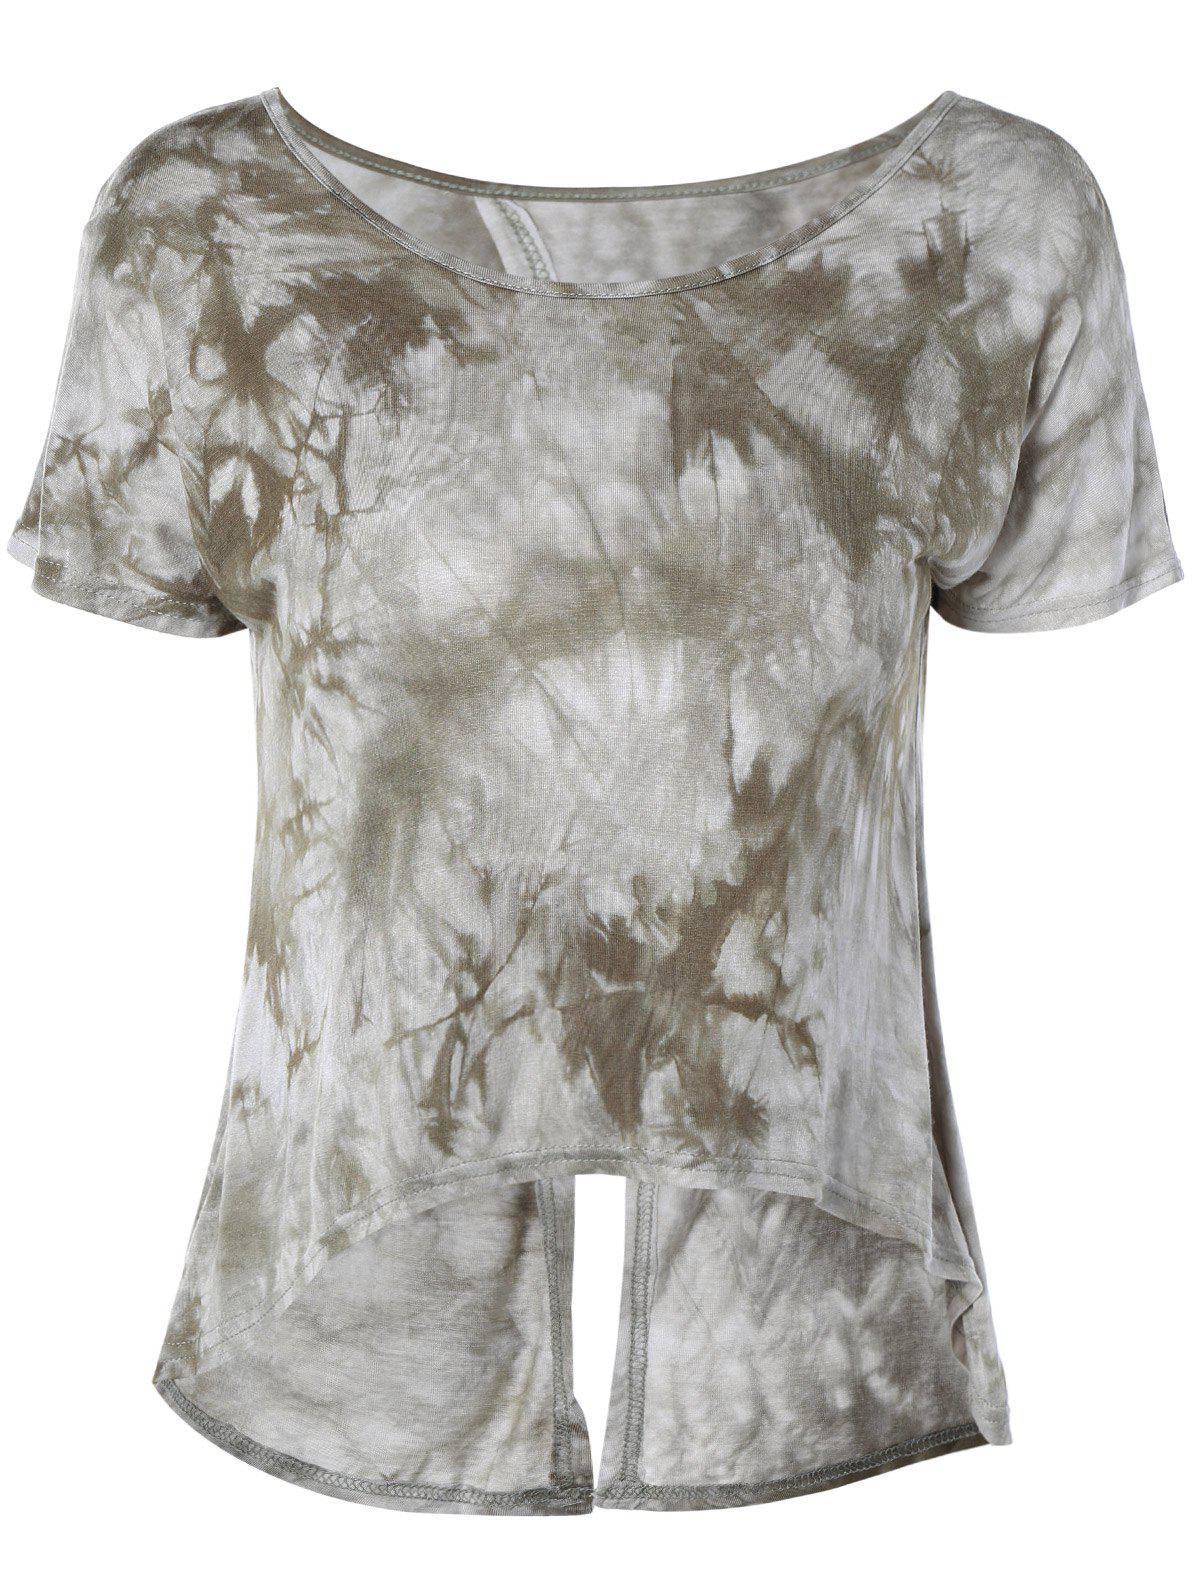 Stylish Women's Tie-Dyed ScoopNeck Short Sleeves Top - OLIVE GREEN ONE SIZE(FIT SIZE XS TO M)